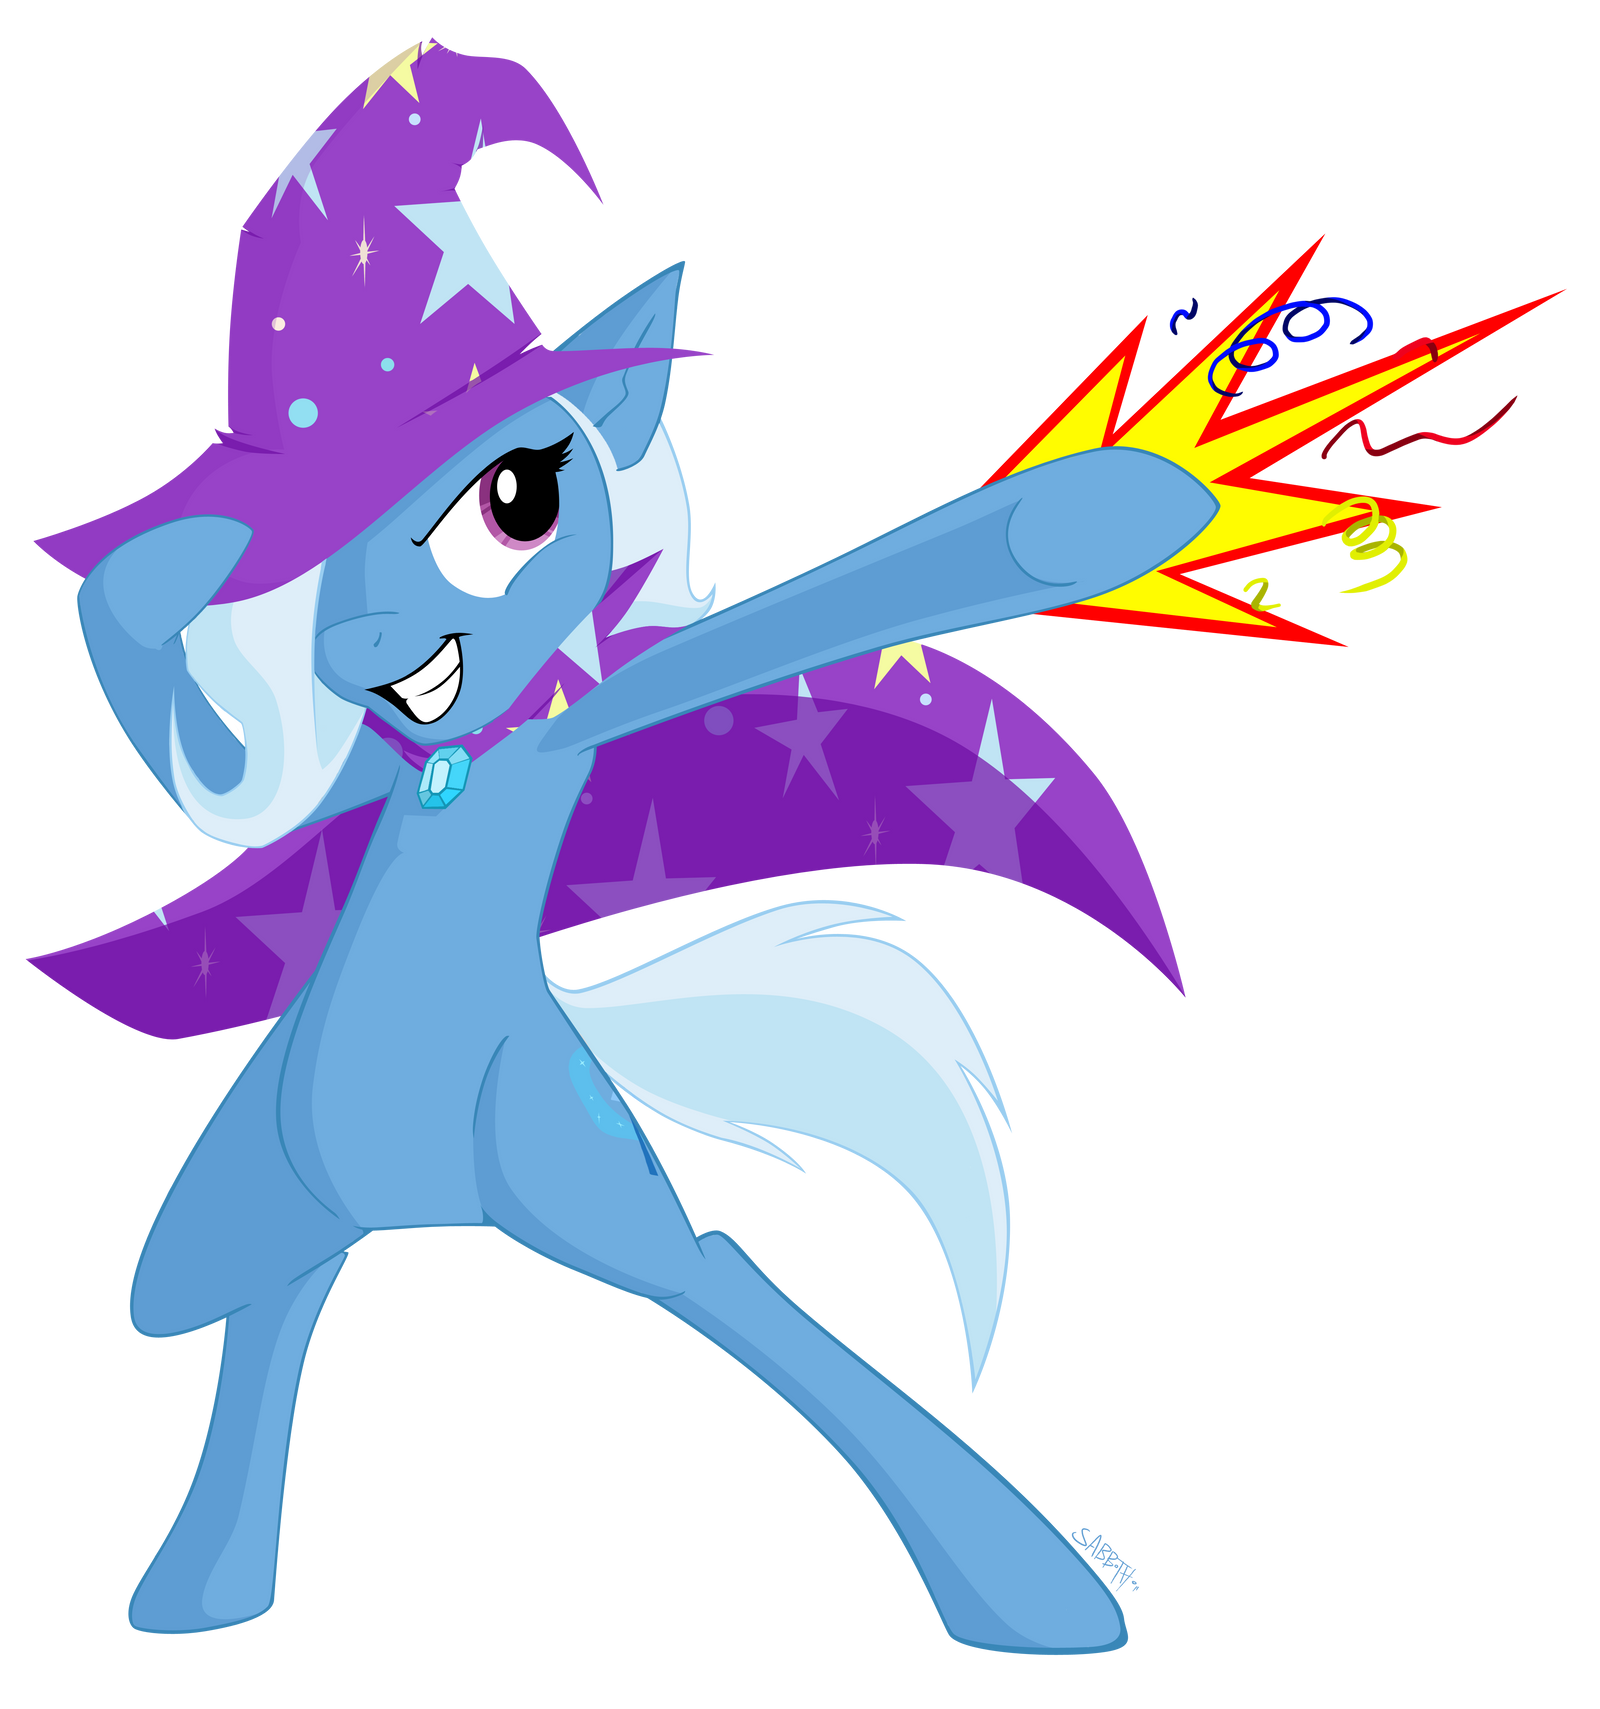 TRIXIE by CopyCatastrophe